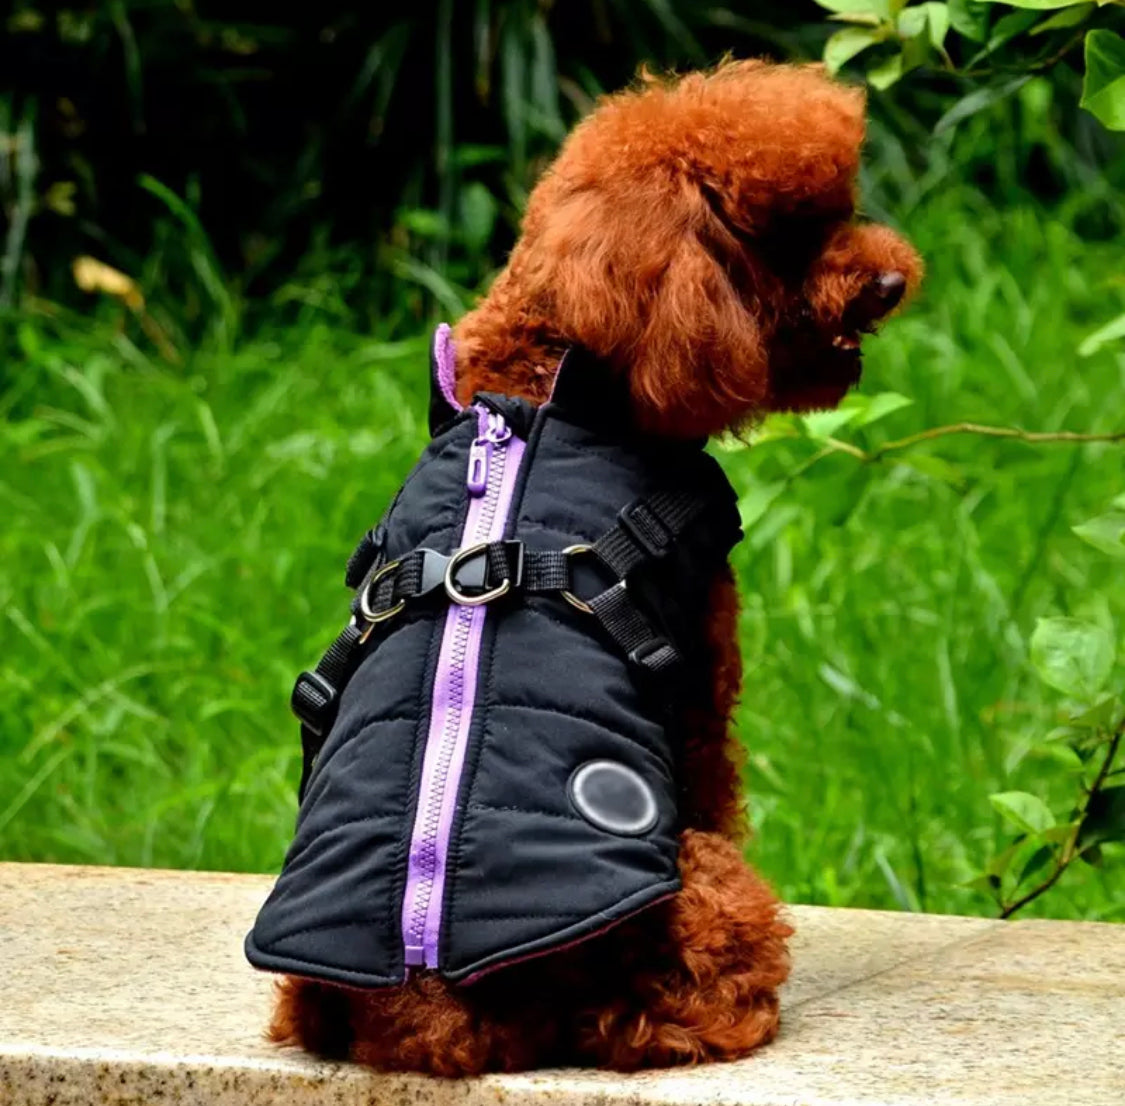 Trekker Snowdon Small Dog Coat Inbuilt Harness Black and Purple